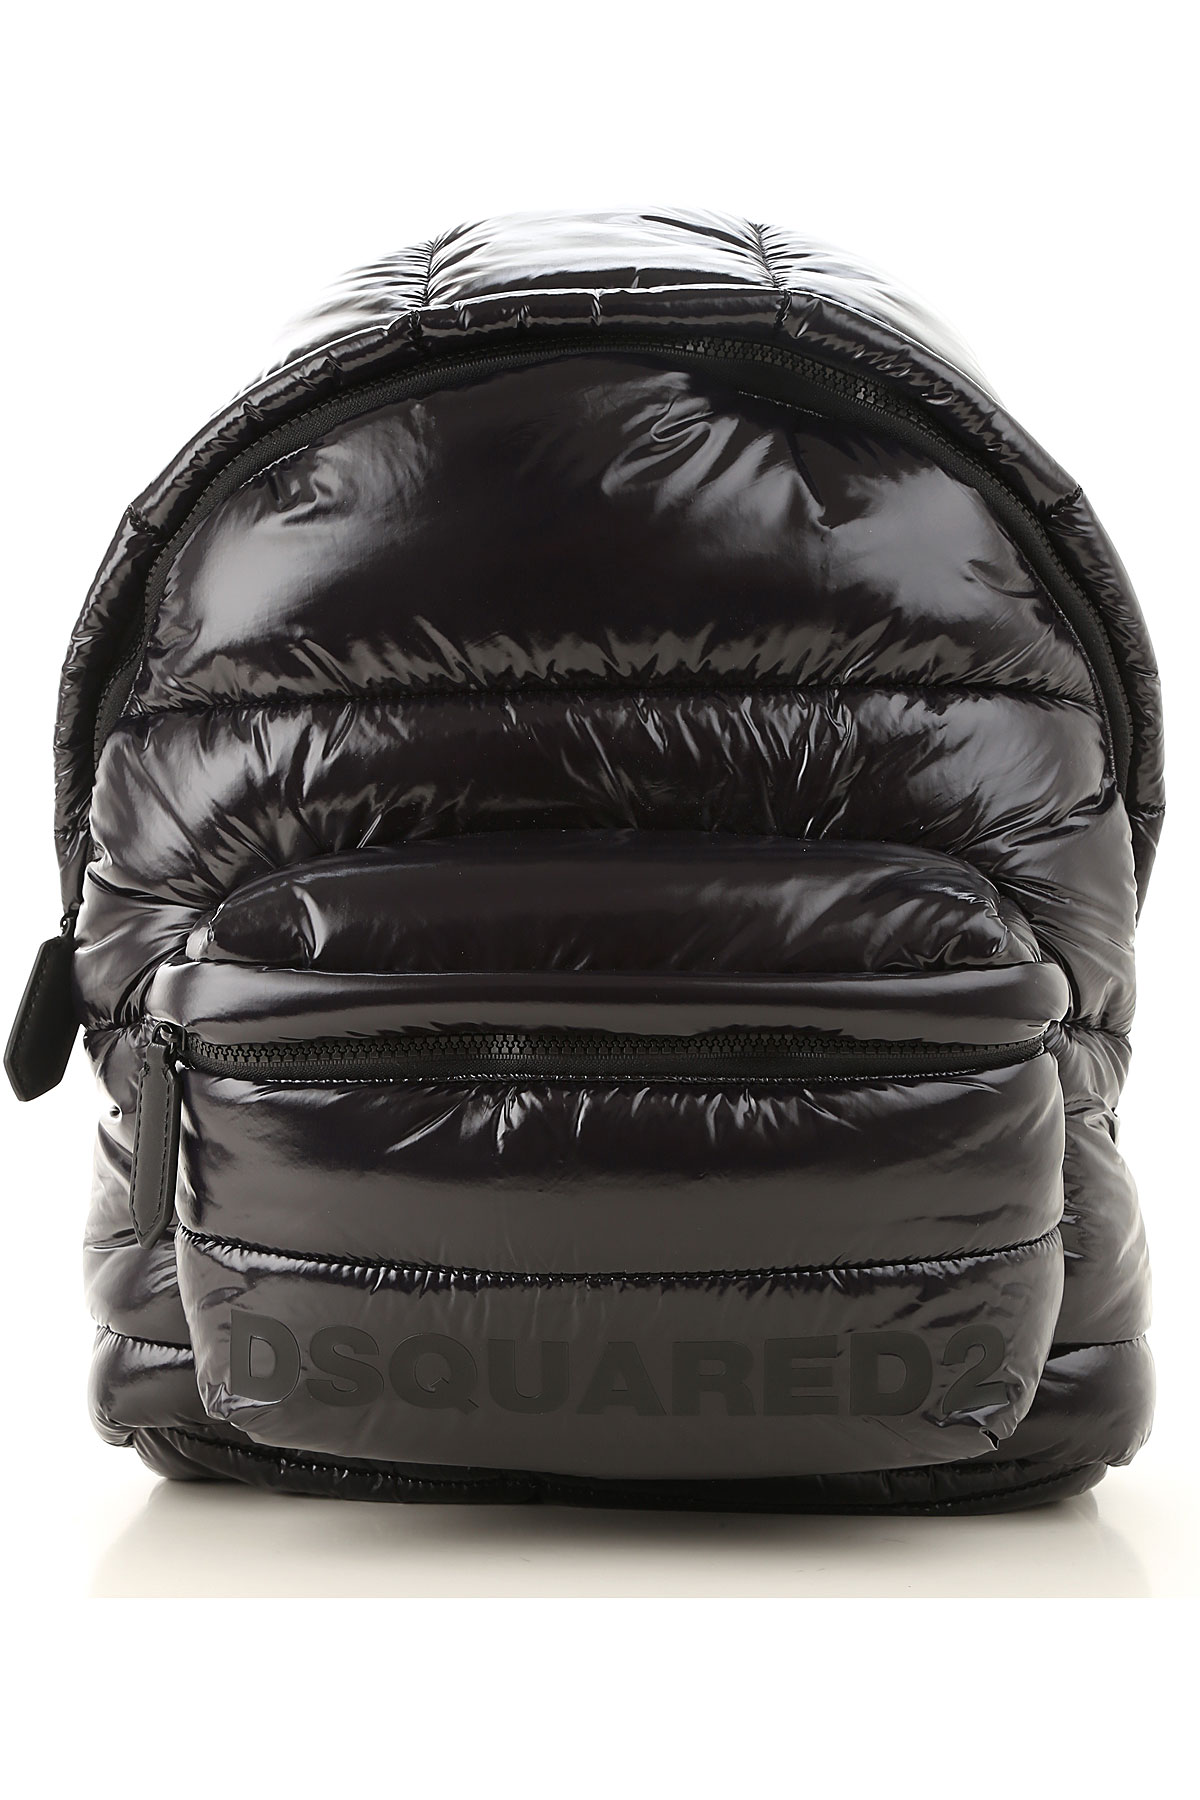 Dsquared2 Backpack for Women On Sale in Outlet, Black, Nylon, 2019